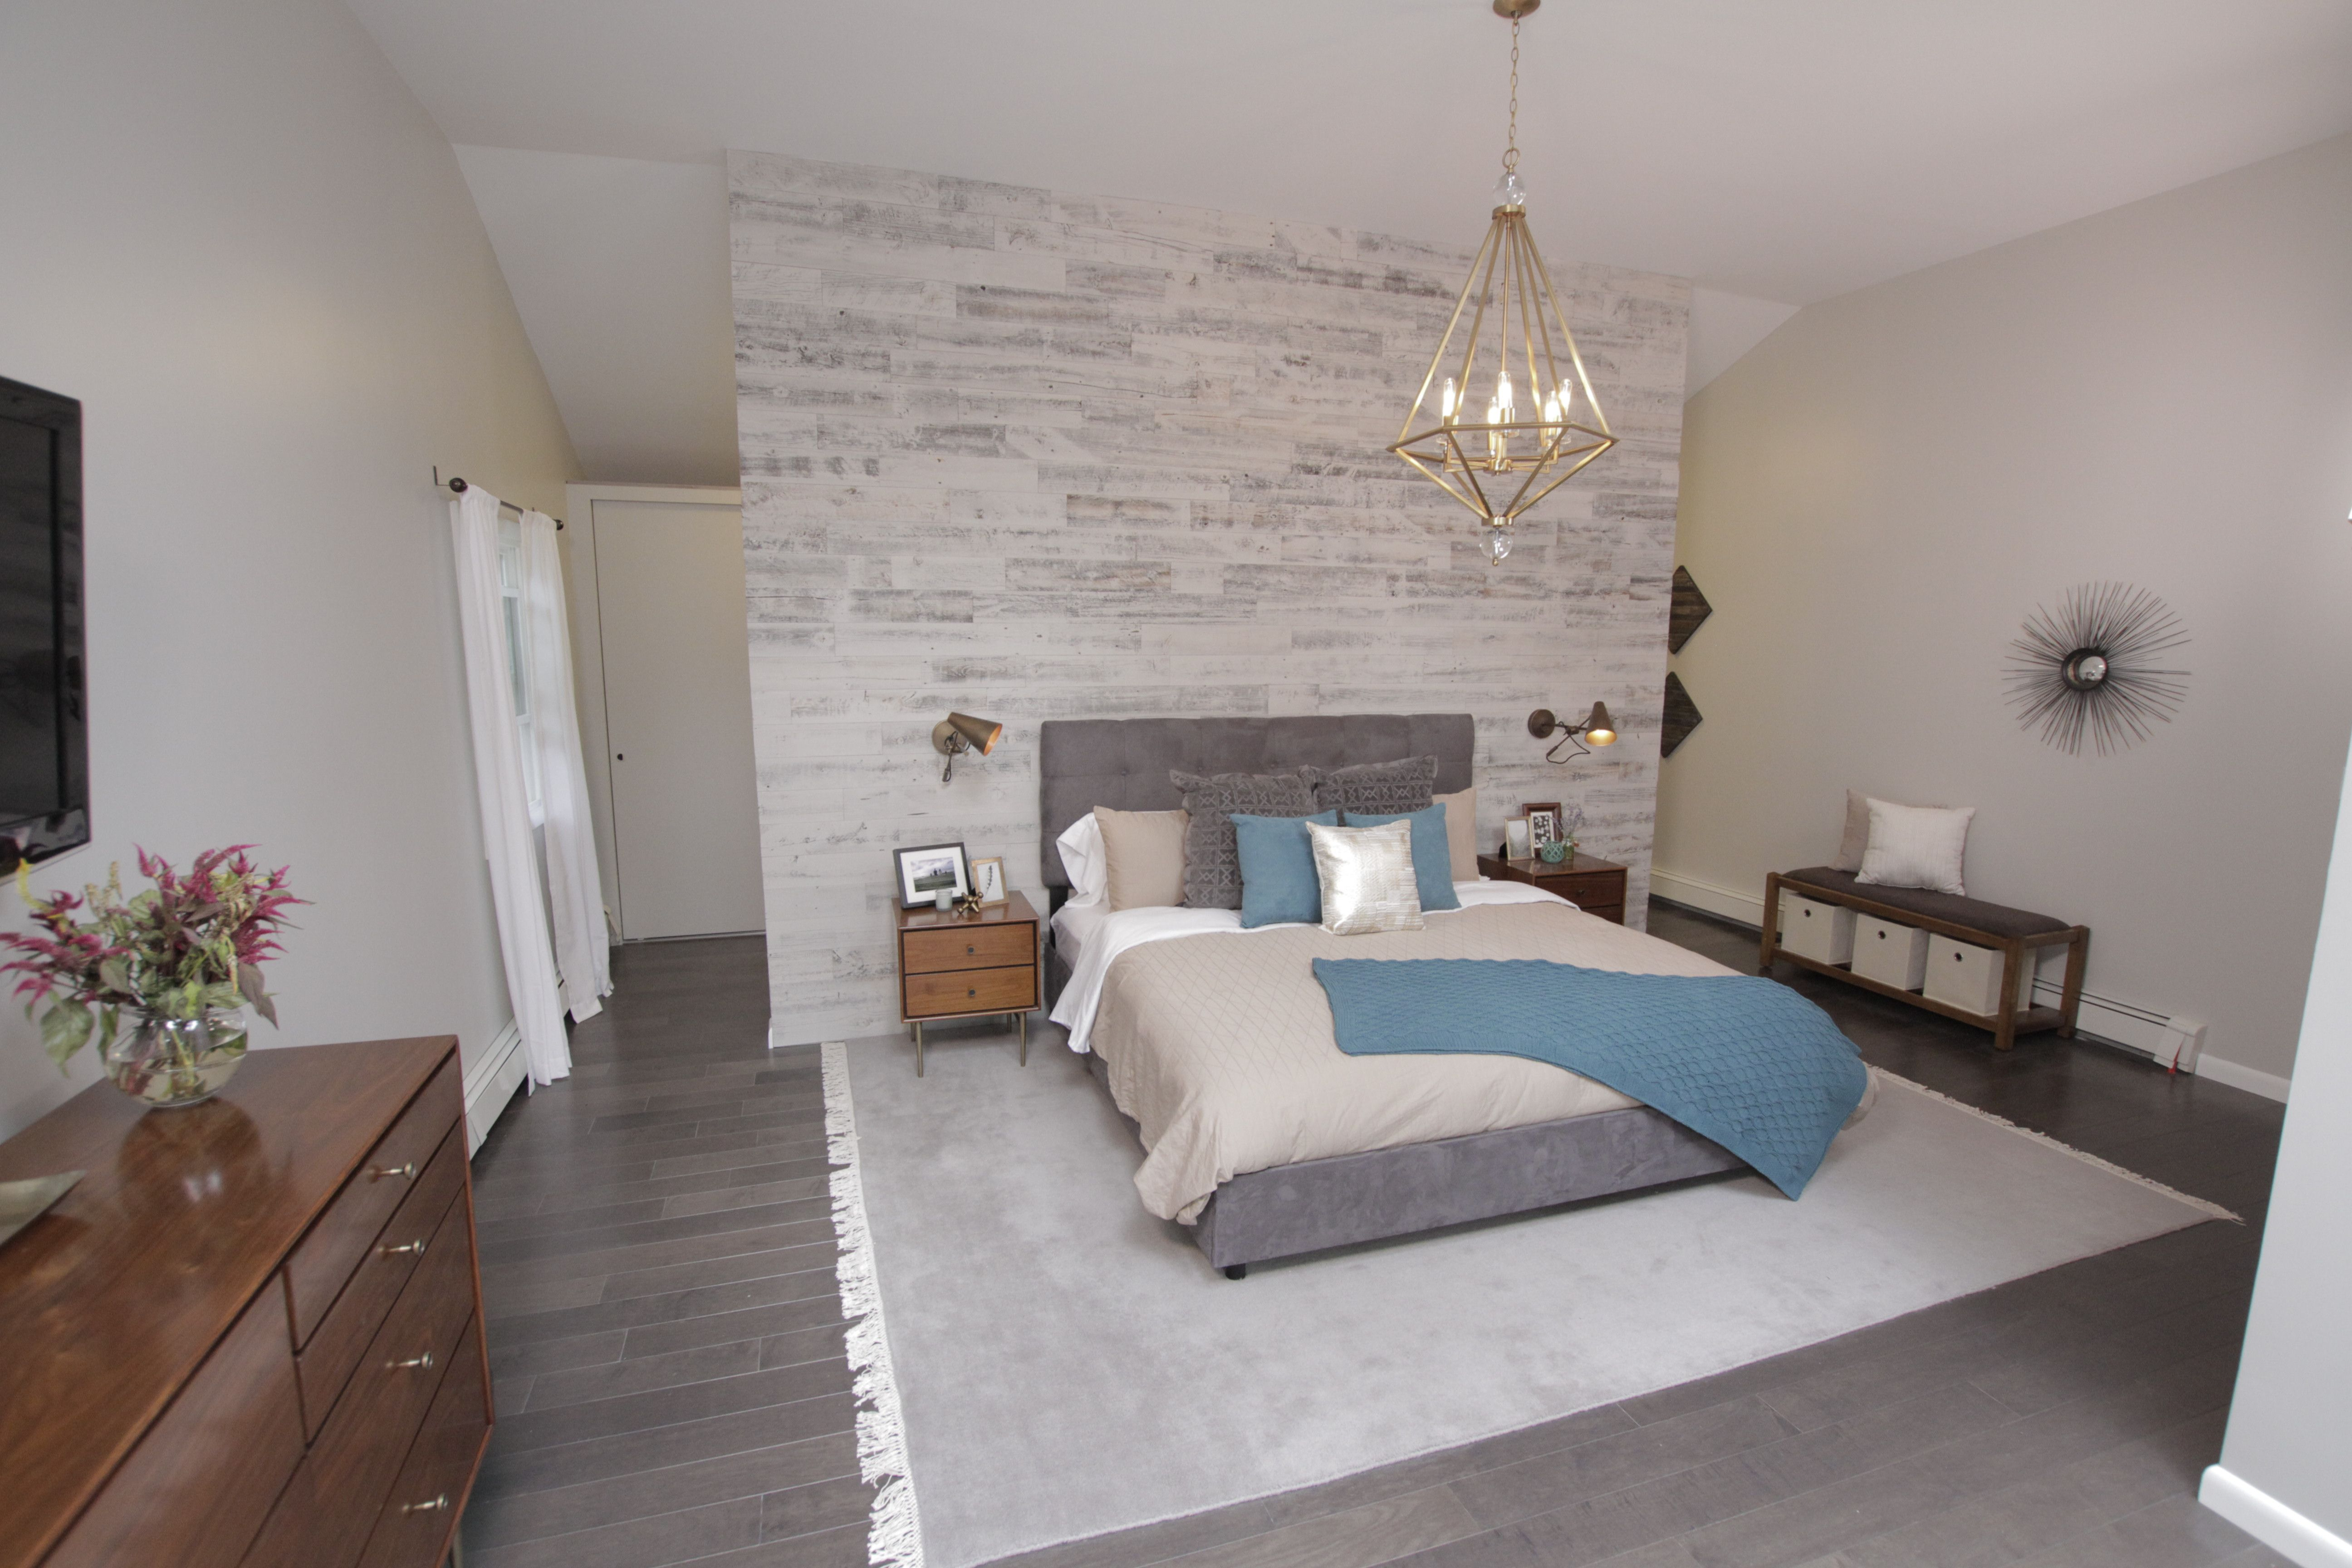 Marc and Ashleigh's master bedroom from Property Brothers